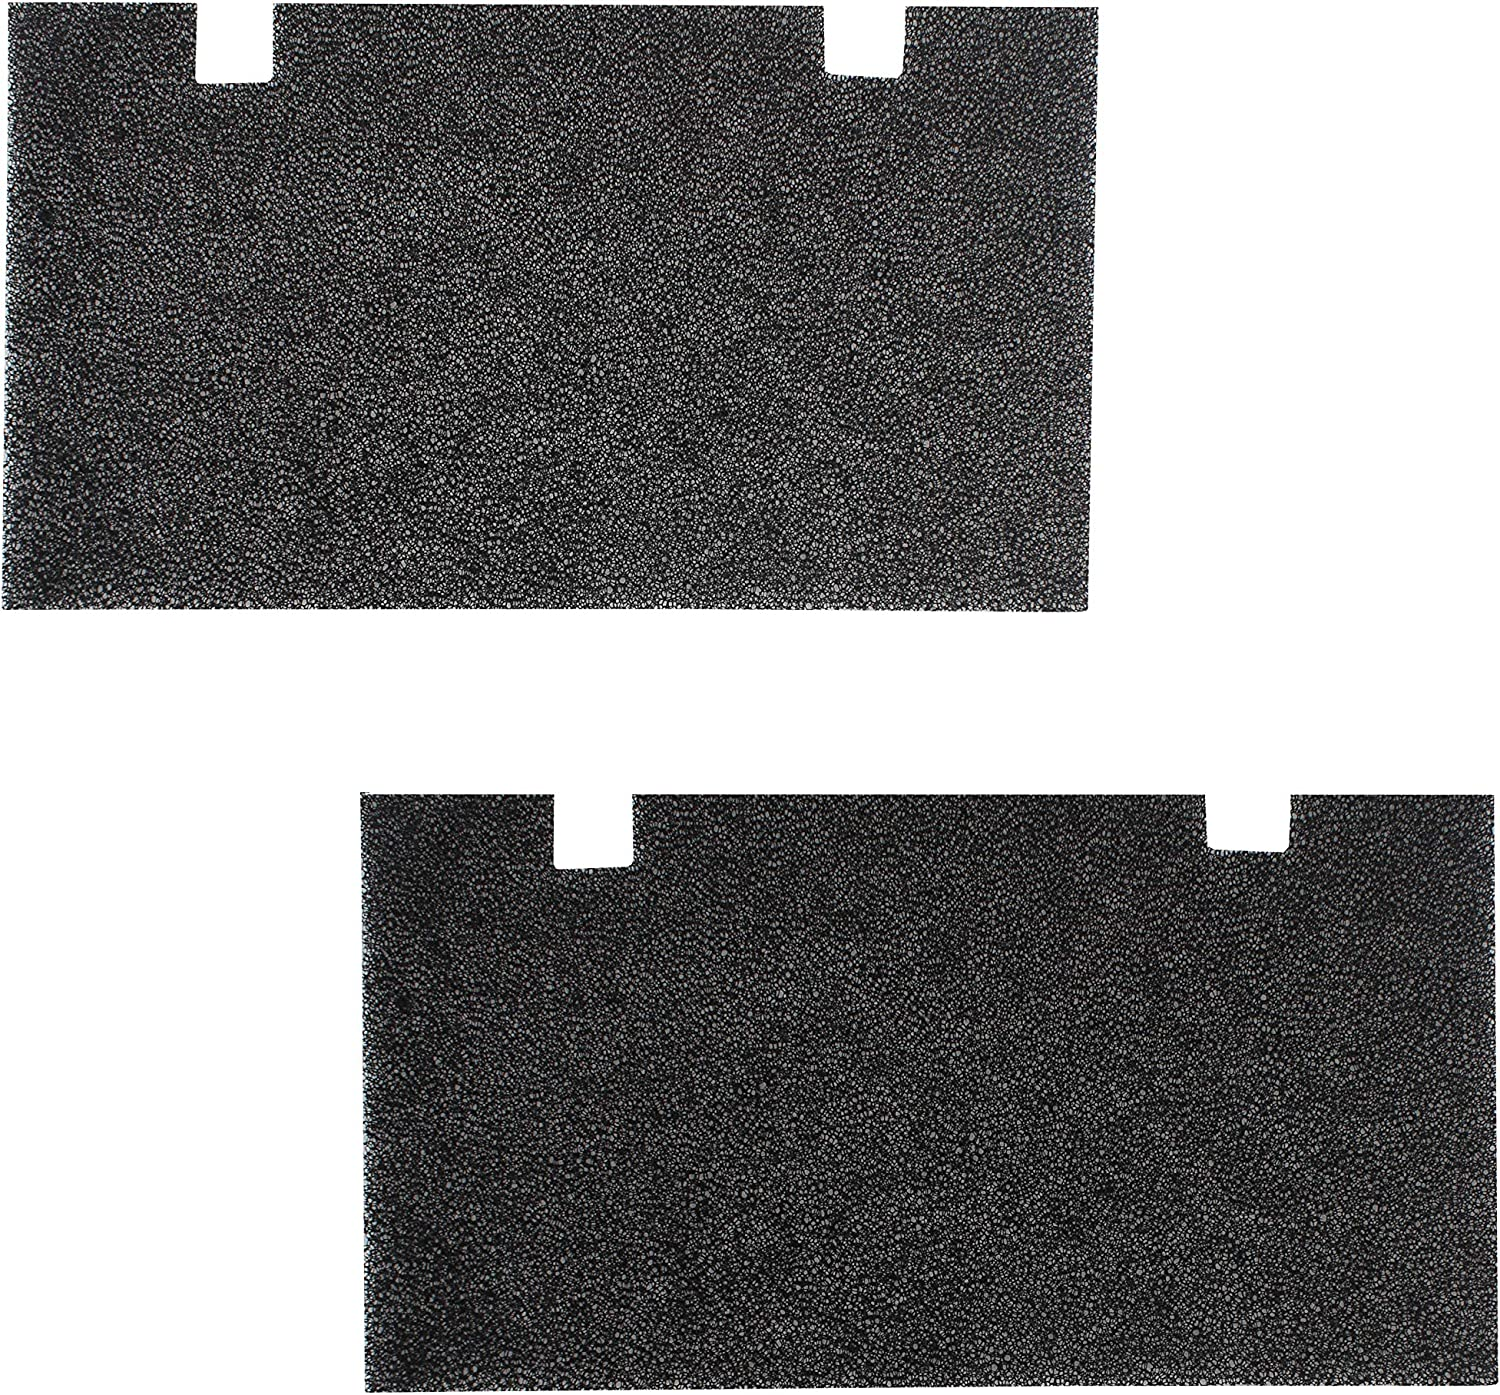 RV A/C Ducted Air Grille Duo-Therm Air Conditioner Grille (Air Filters Pad)